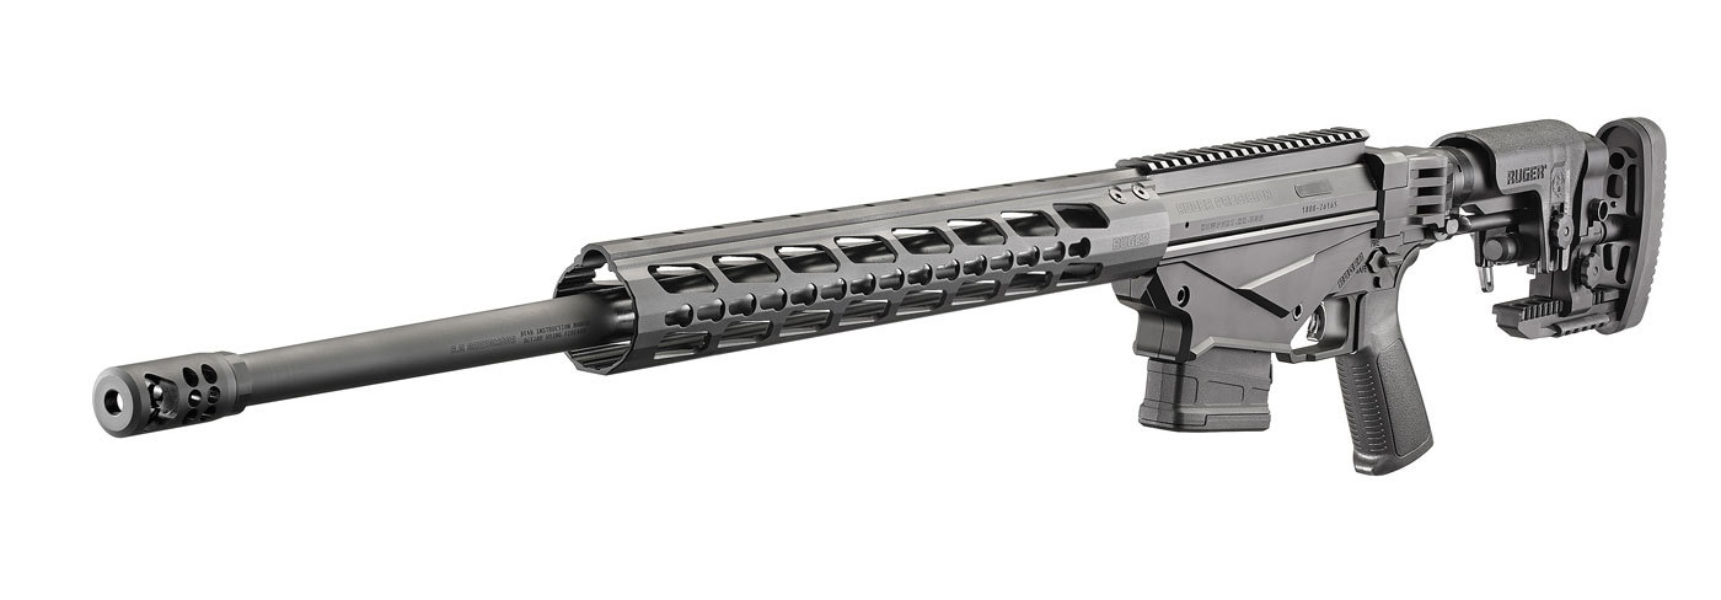 Ruger Precision Rifle 6 5 Creedmoor01